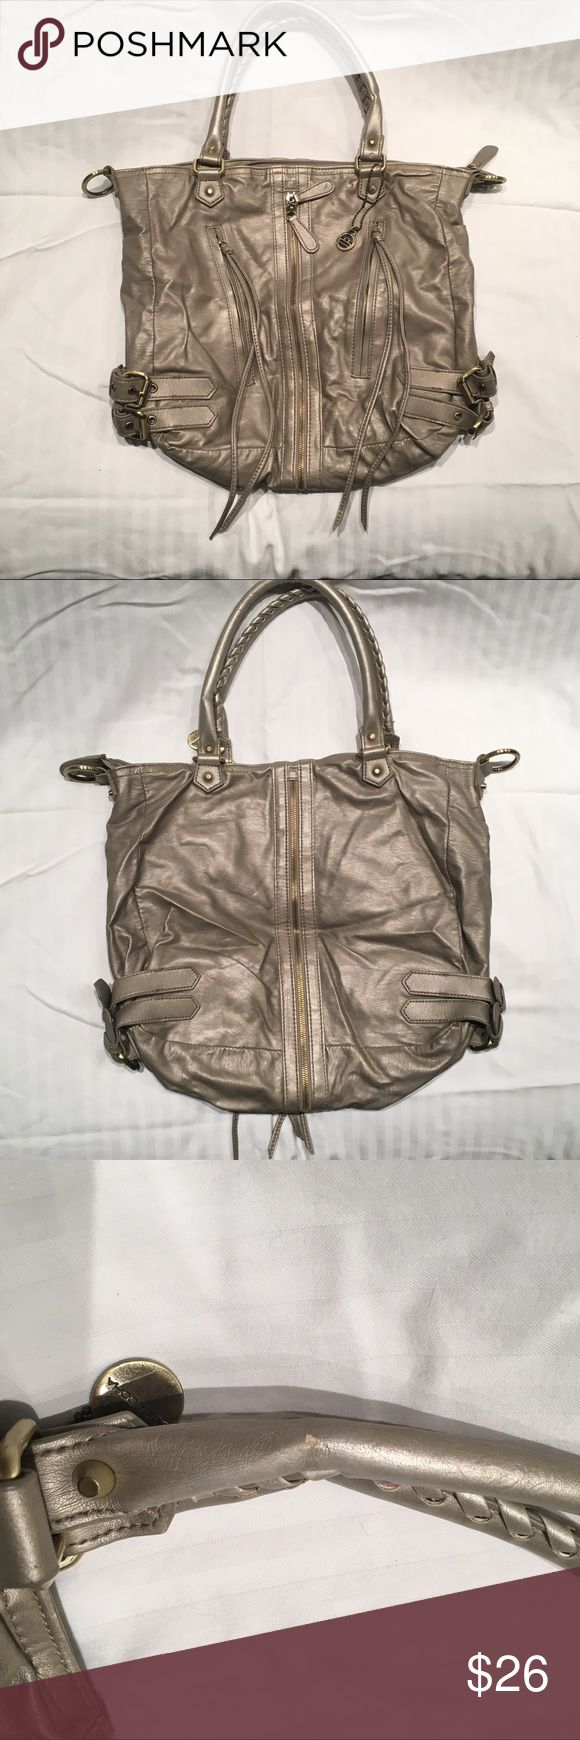 "Big Buddha Silver Zipper Tote Bag Tasseled vegan leather shoulder bag from Big Buddha in pre loved condition. Muted silver color. Exterior in excellent shape outside of one small nick on the handle. A few small stains on the lining. Dimensions: 16""W x 12"" H x 4.5"" D Big Buddha Bags Totes"